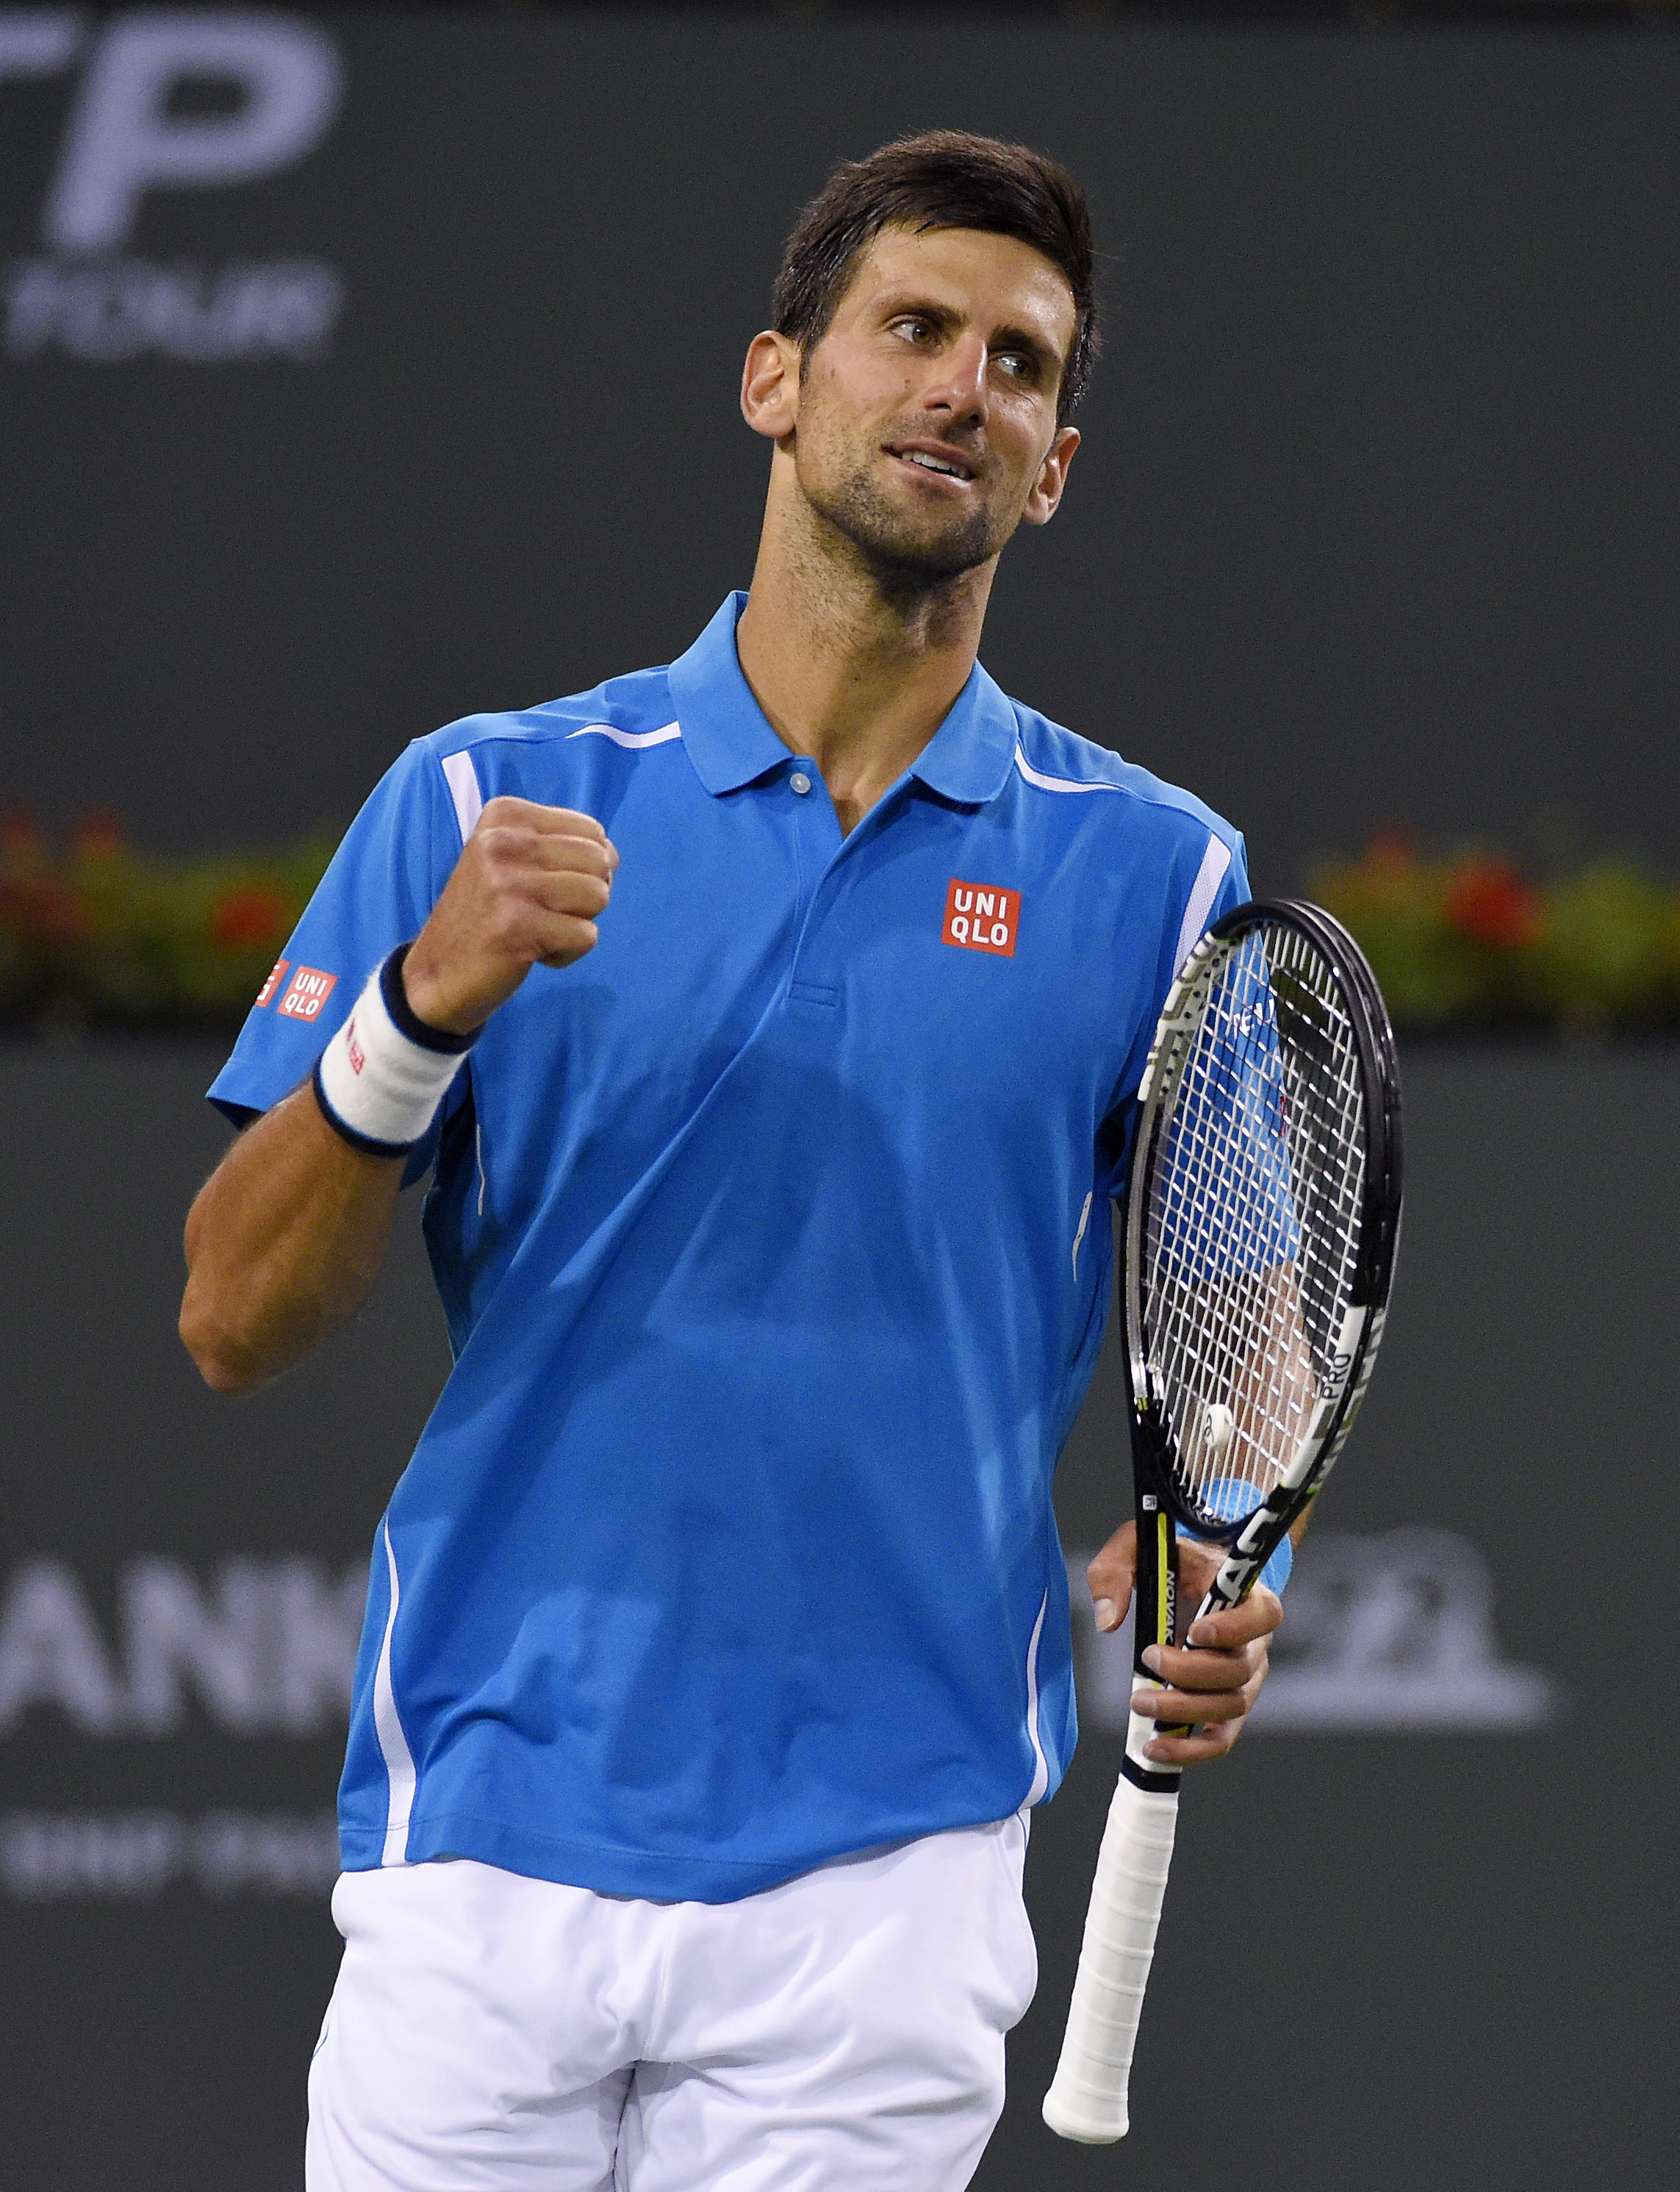 Novak Djokovic, of Serbia, celebrates after defeating Feliciano Lopez, of Spain, 6-3, 6-3 at the BNP Paribas Open tennis tournament, Wednesday, March 16, 2016, in Indian Wells, Calif. (AP Photo/Mark J. Terrill)